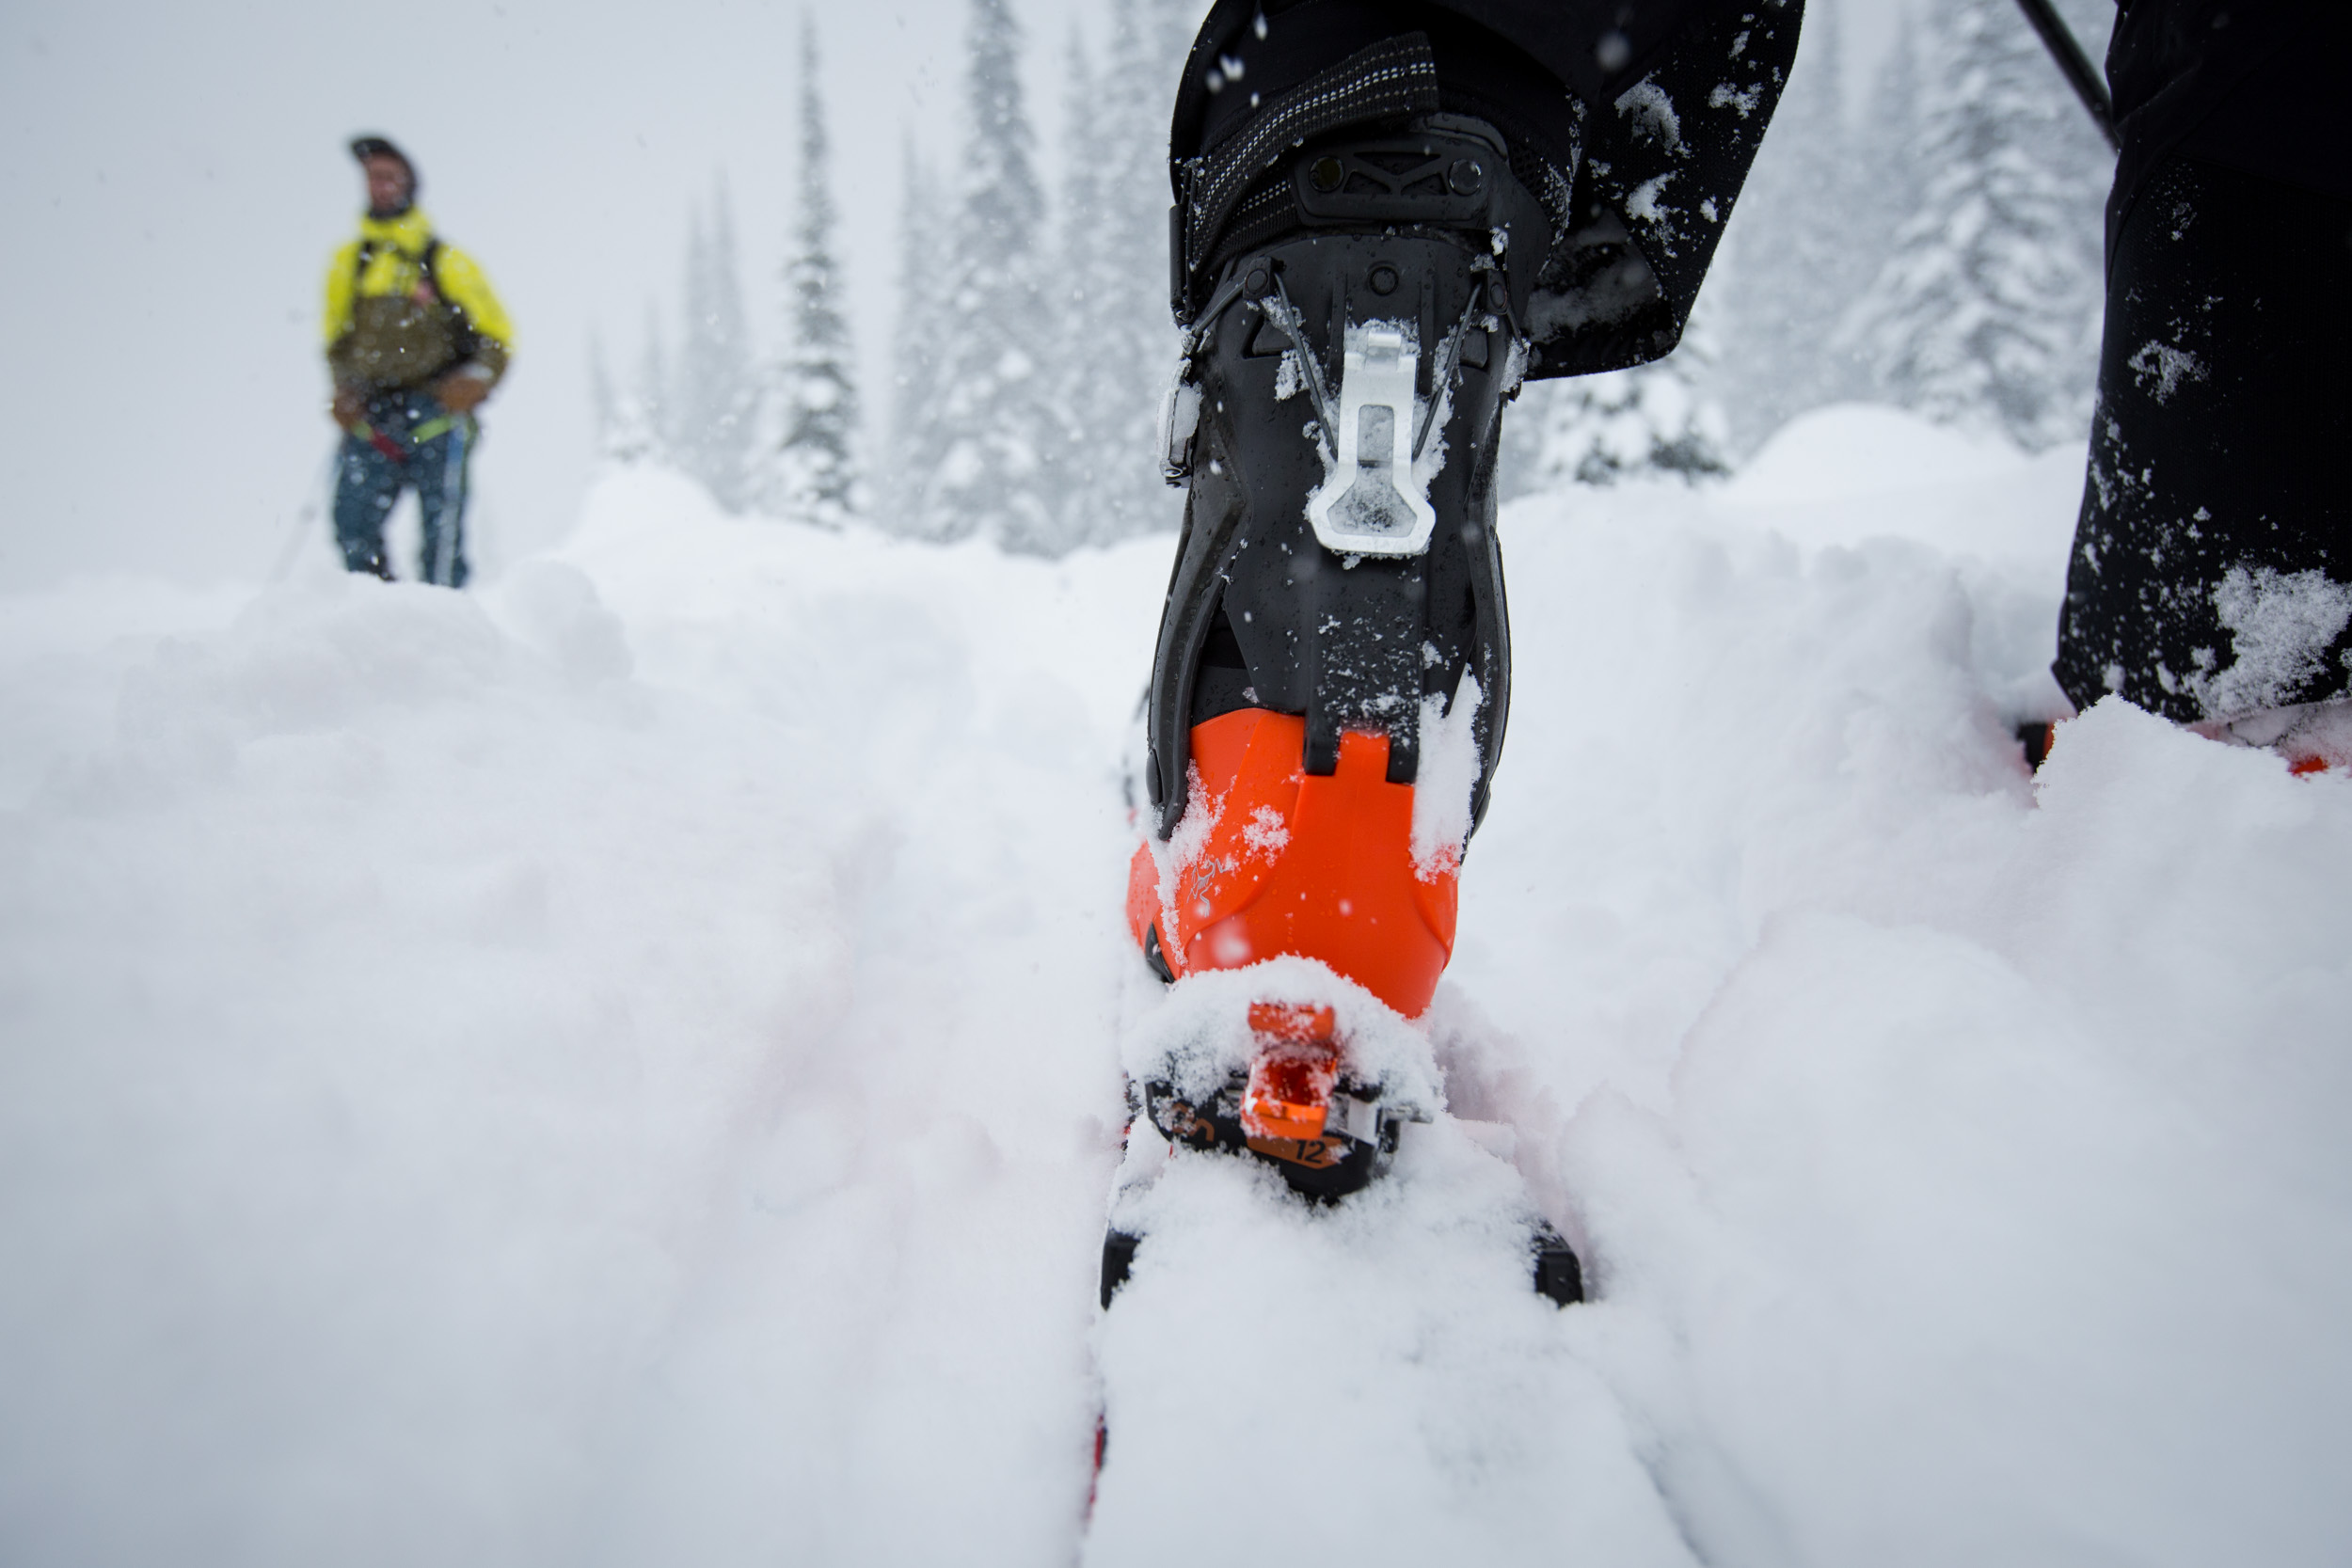 29b582e64c UK exclusive  Fall-Line tests the new Arc teryx ski boots - Fall ...